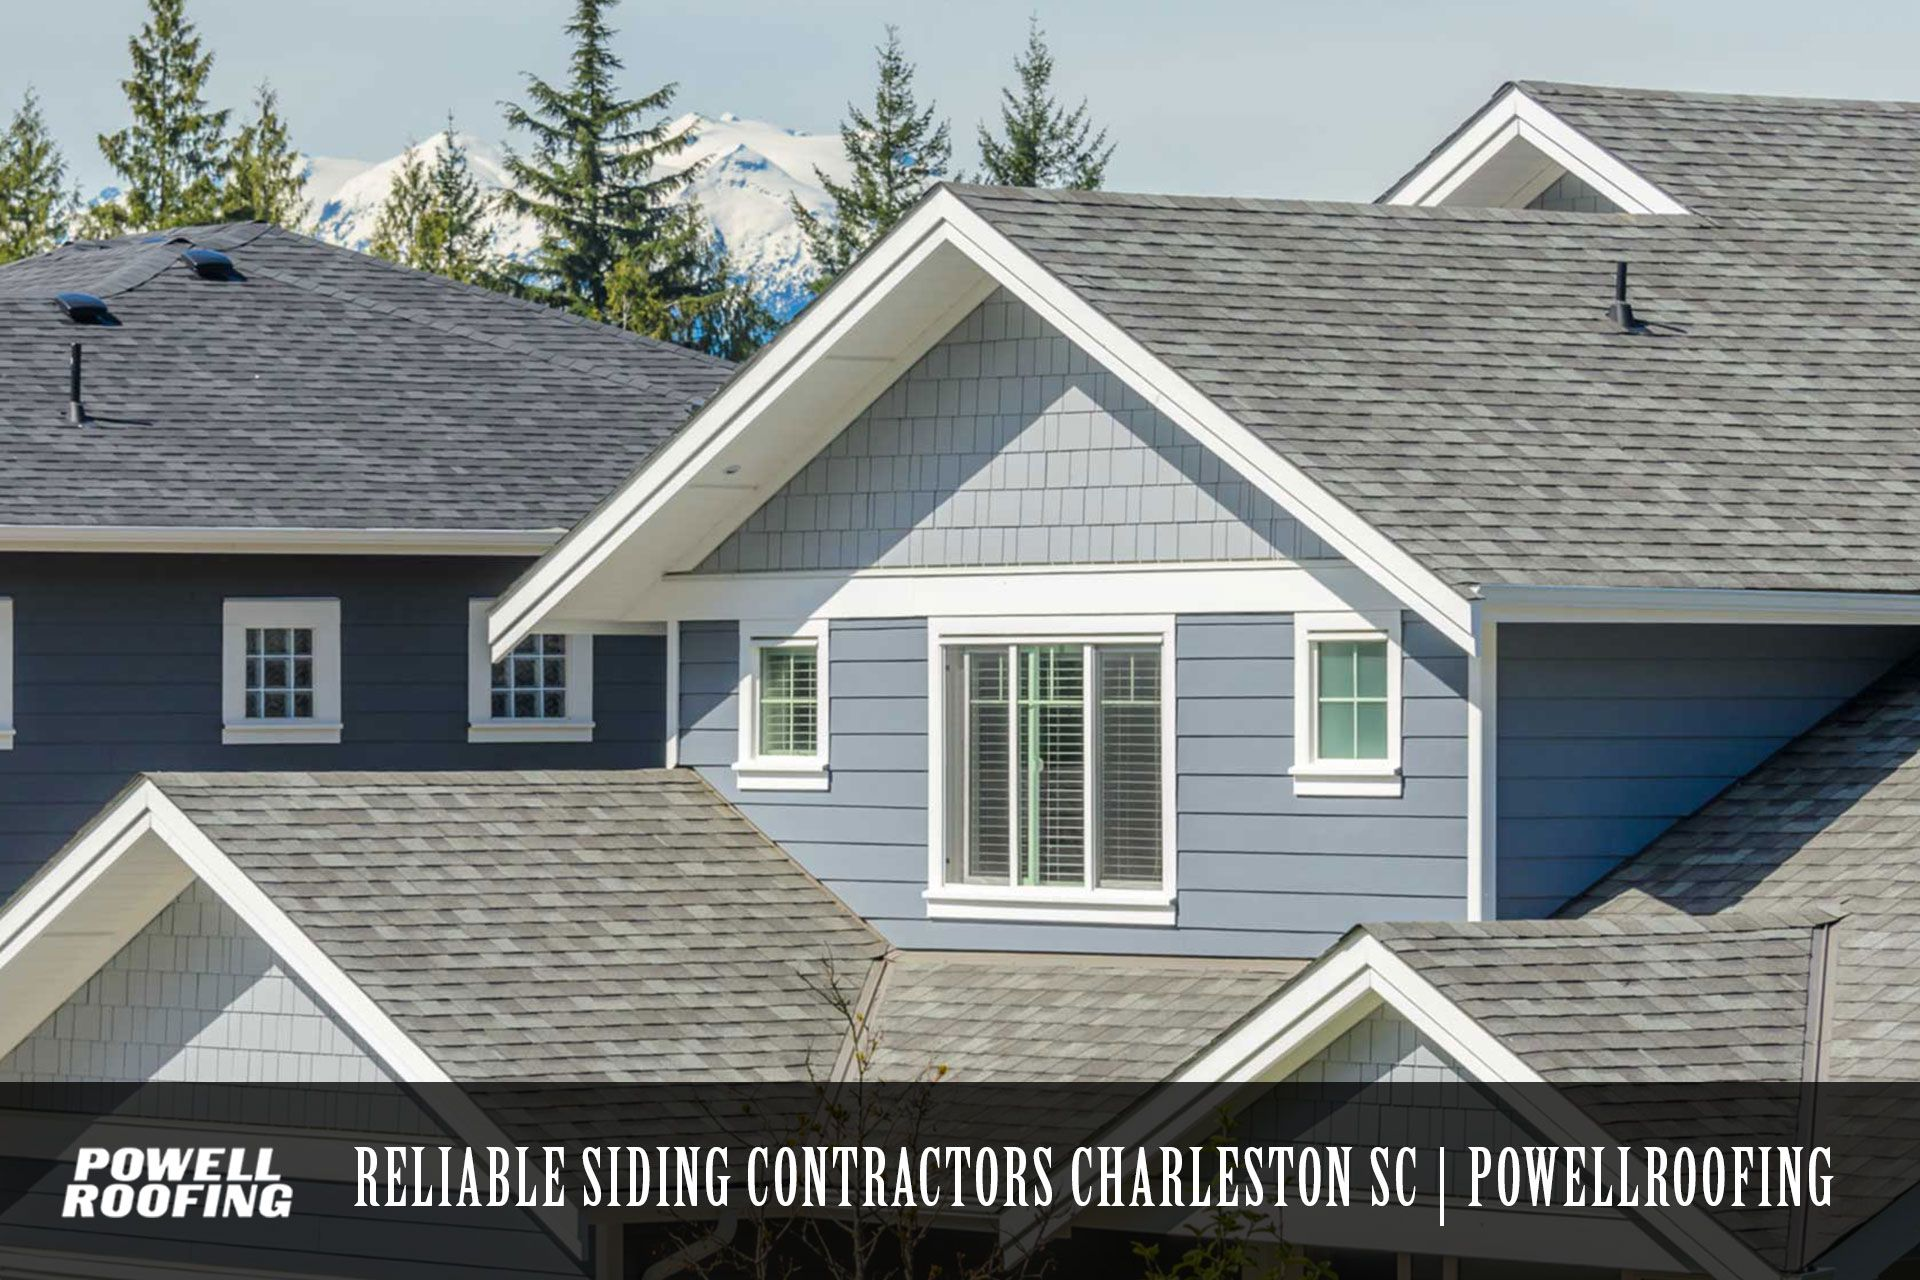 Powell Roofing Serve You With Outstanding Siding Contractors In Charleston Sc We Are Considerable The Best In Roofing Roof Maintenance Architectural Shingles